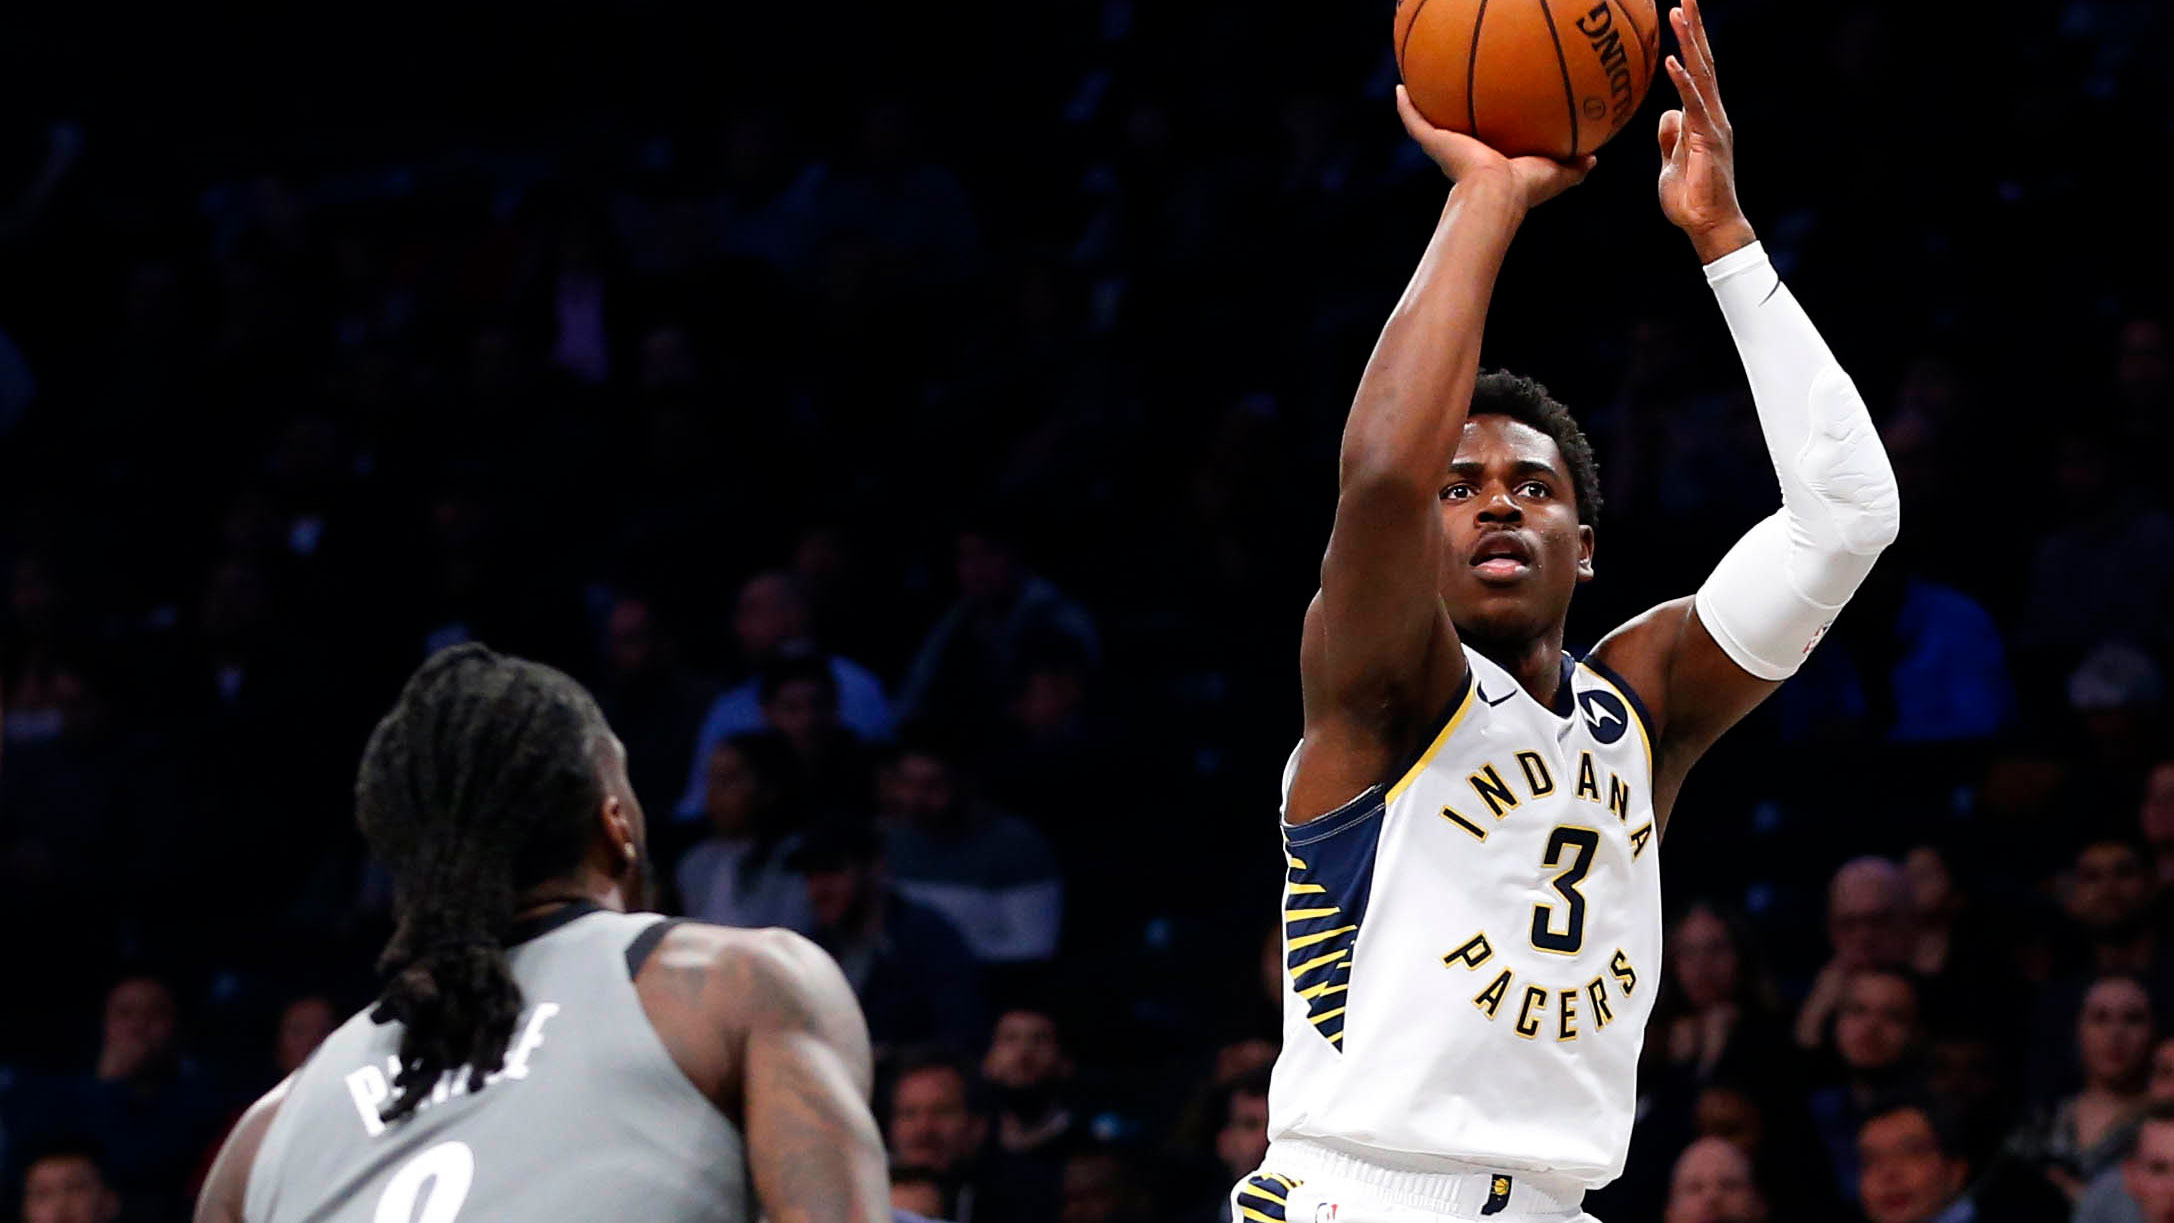 19.11.19. Обзор. GAME RECAP: Pacers 115, Nets 86